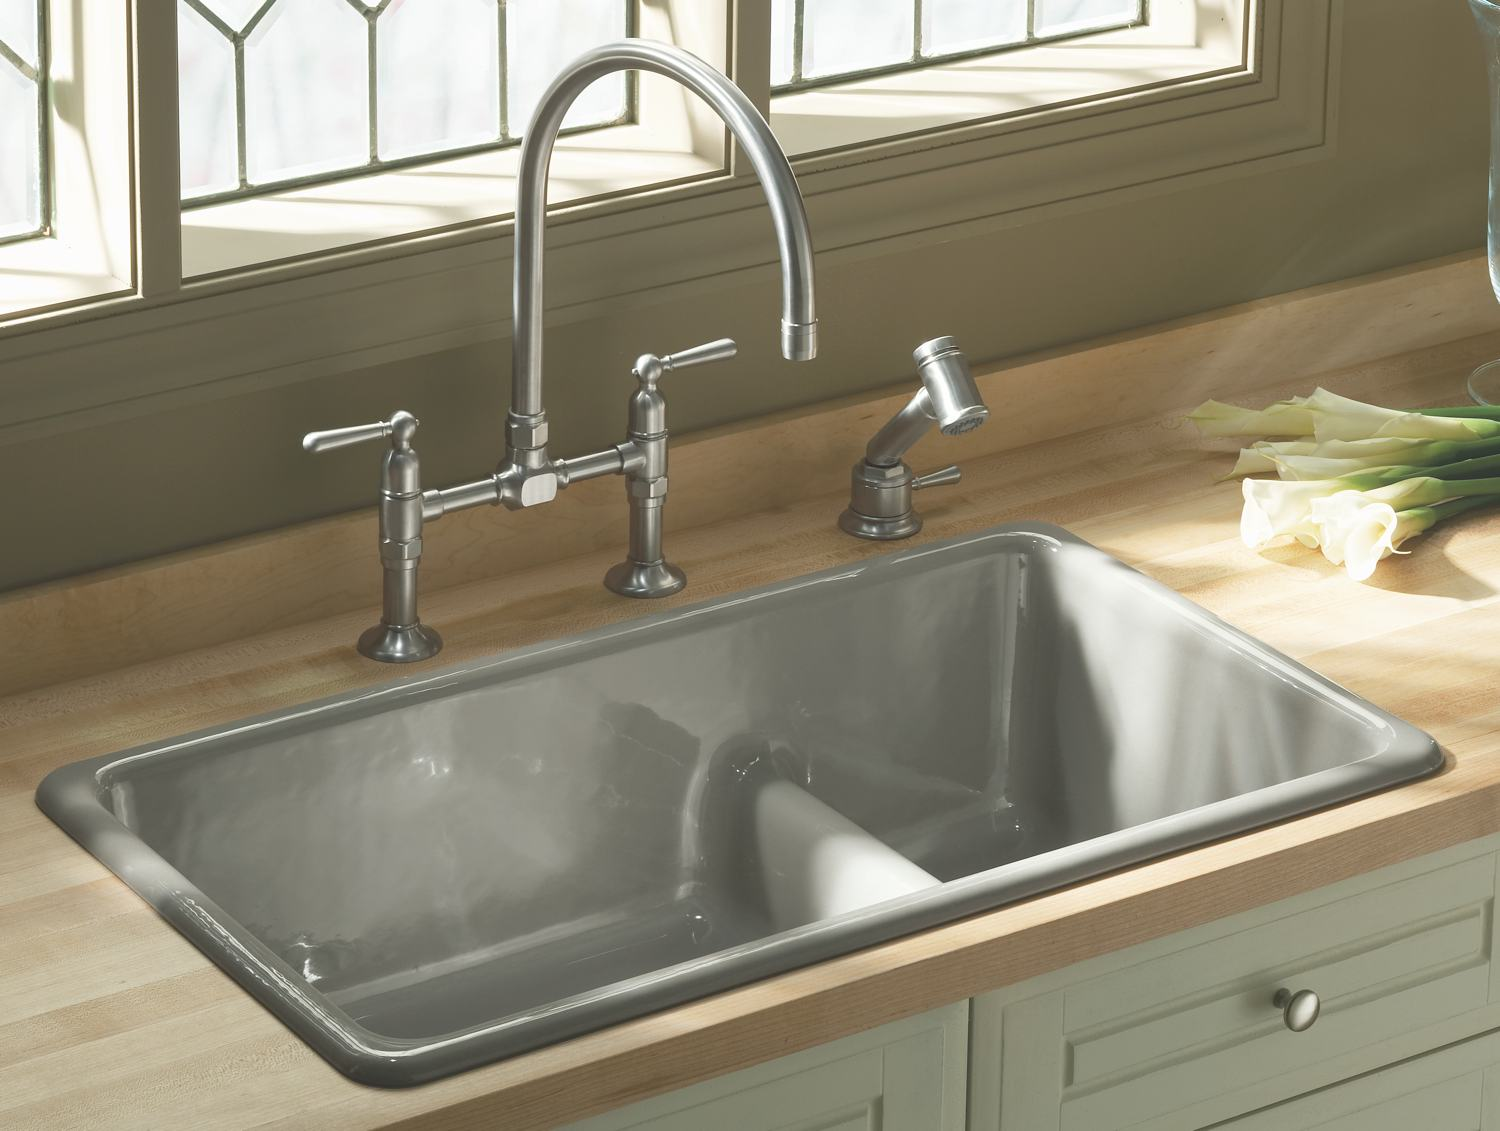 Self Rimming Kitchen Sink Image. Source: Amazon.com